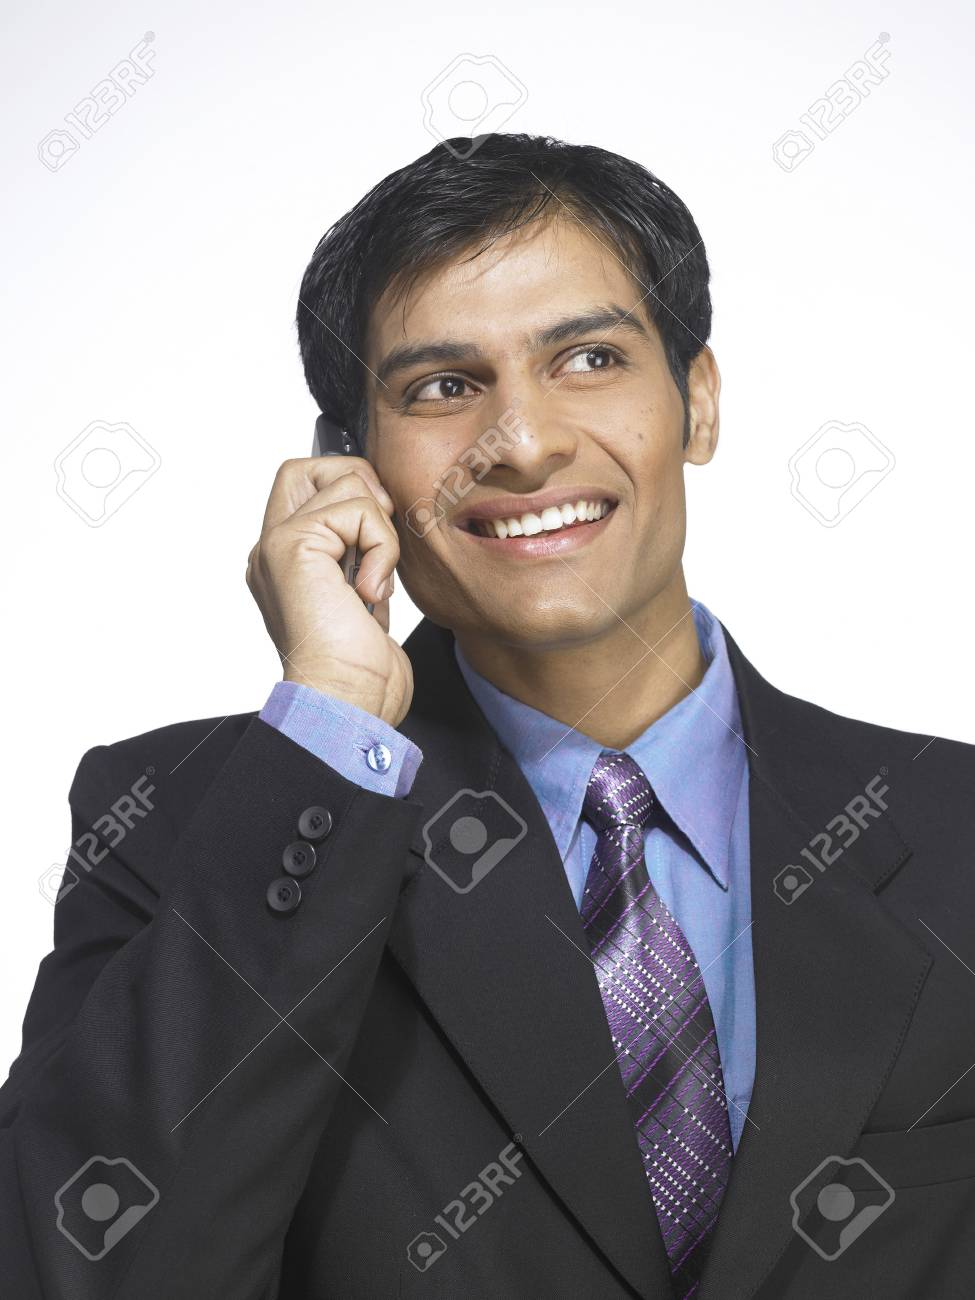 1c7d27d306 South Asian Indian executive man talking on mobile phone Stock Photo -  85736243